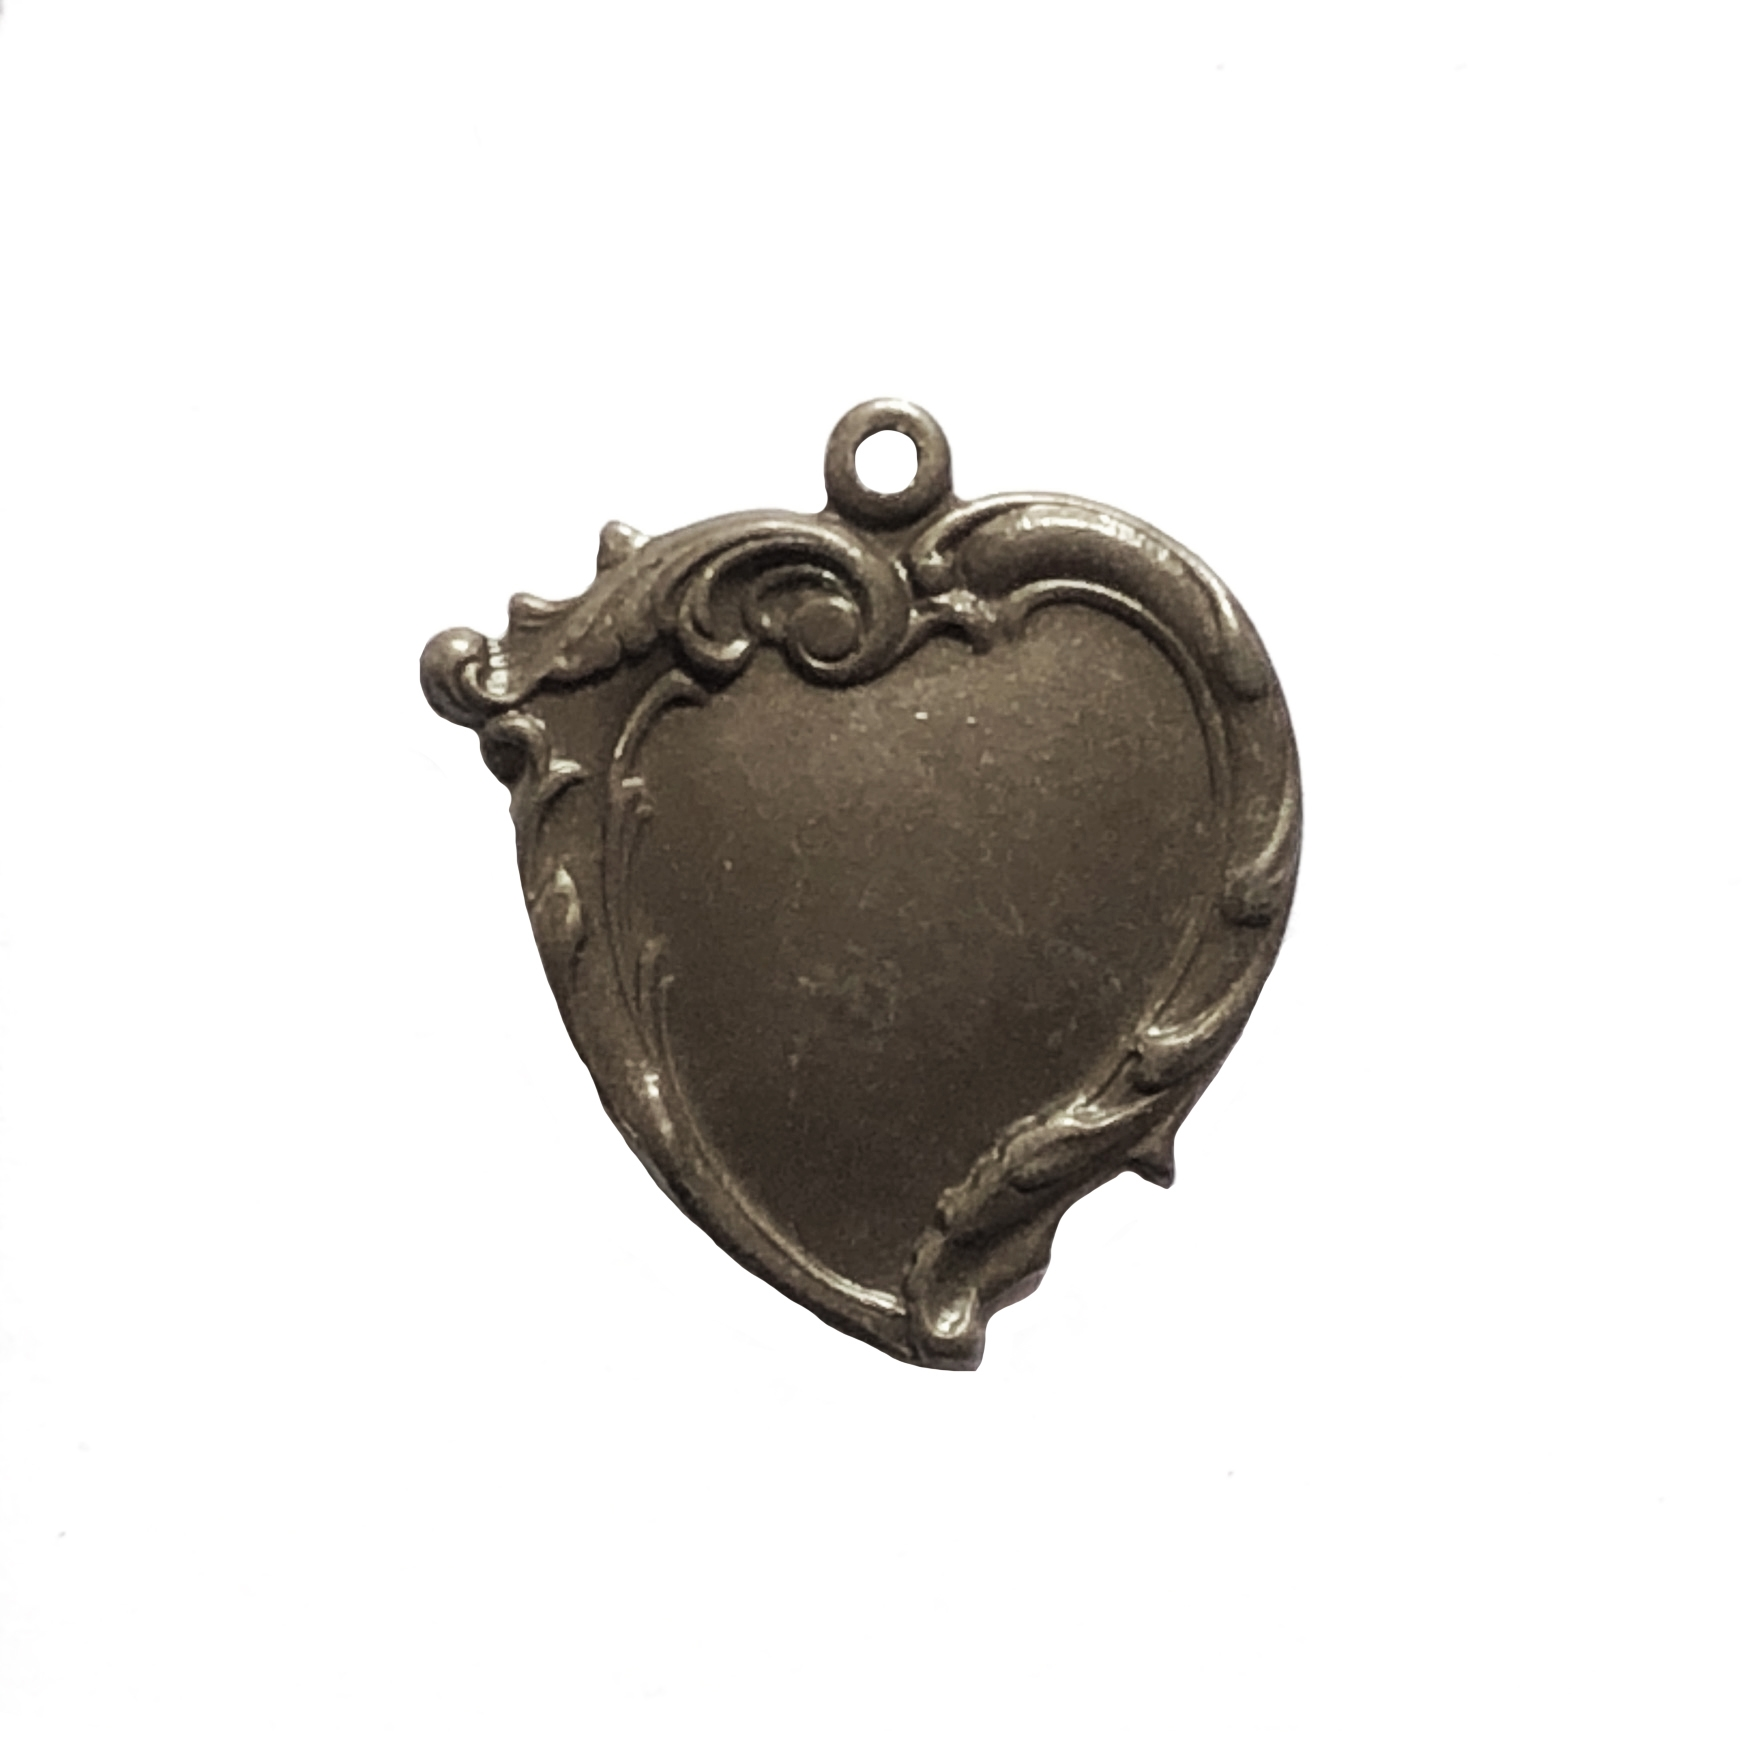 curved heart charm, heart stamping, stamping, 27x25mm, 09914, heart jewelry, heart charm, hearts, jewelry making, jewelry supplies, B'sue Boutiques, curved heart, vintage jewelry supplies